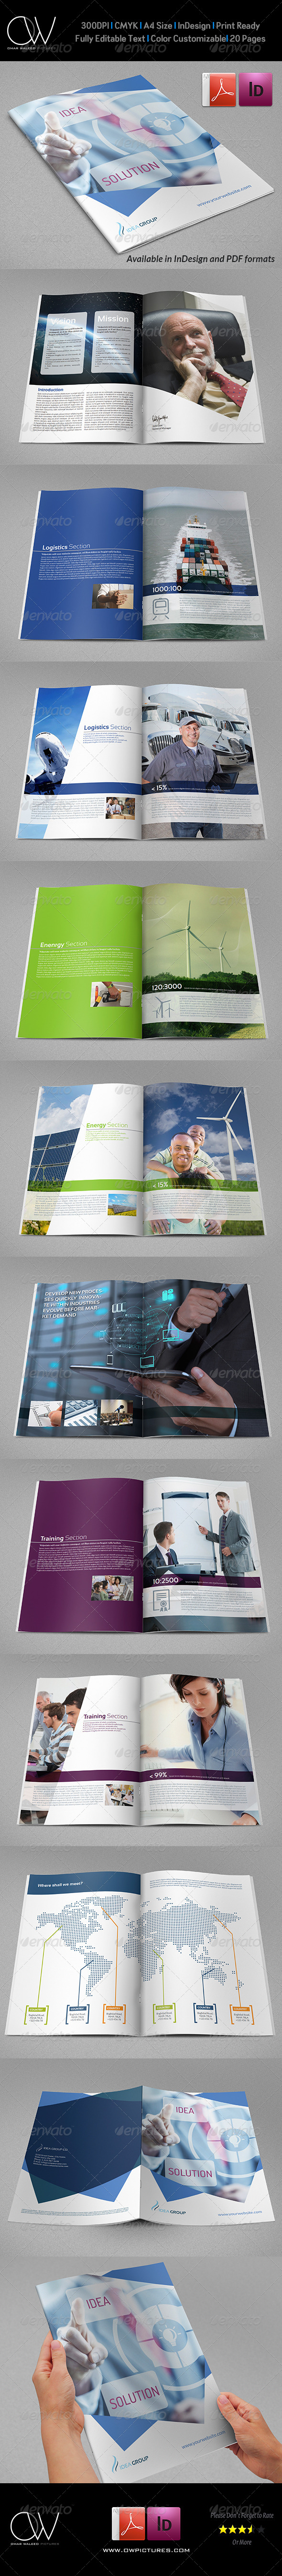 Corporate Brochure Template Vol.28 - 20 Pages - Corporate Brochures